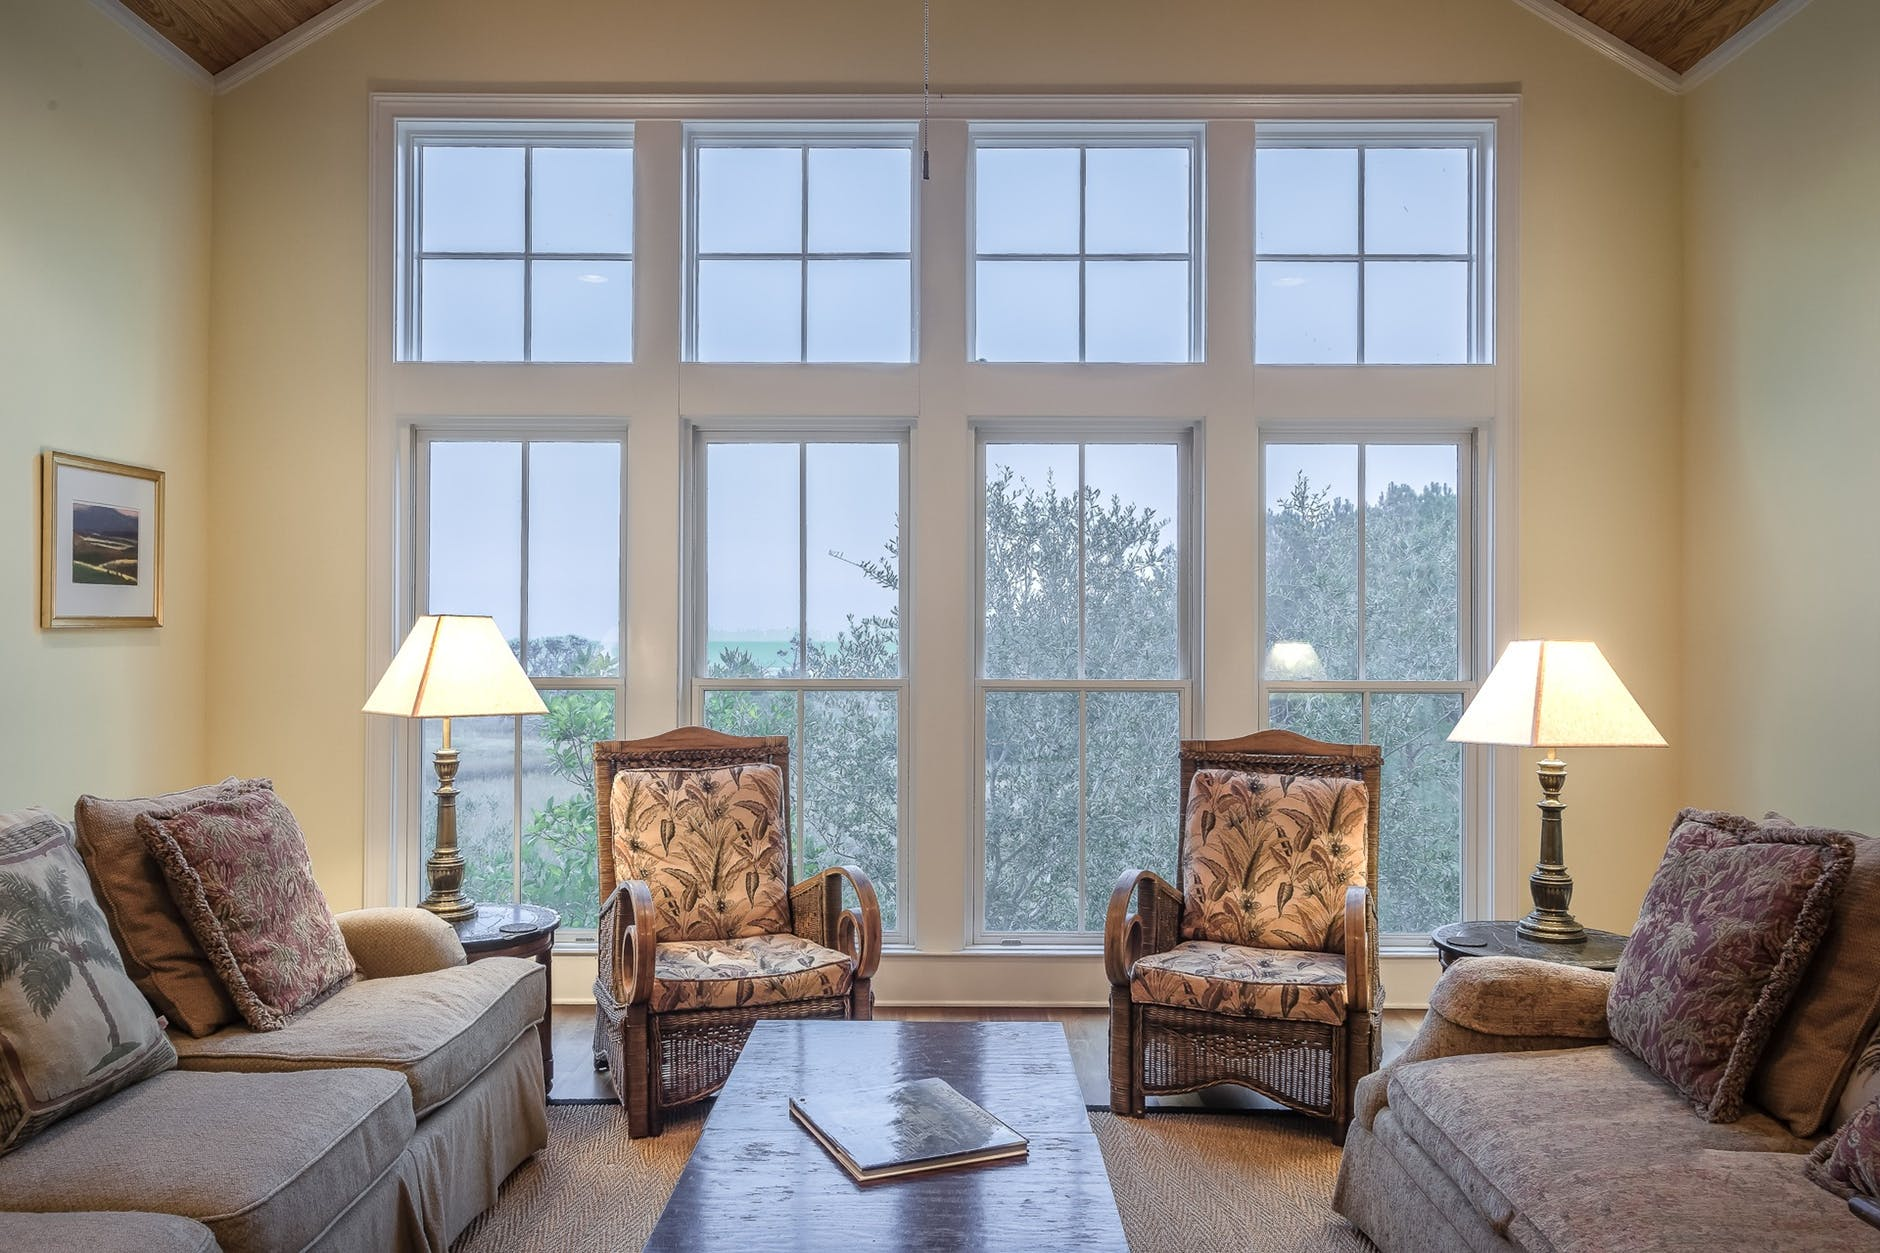 Markham Windows and Doors